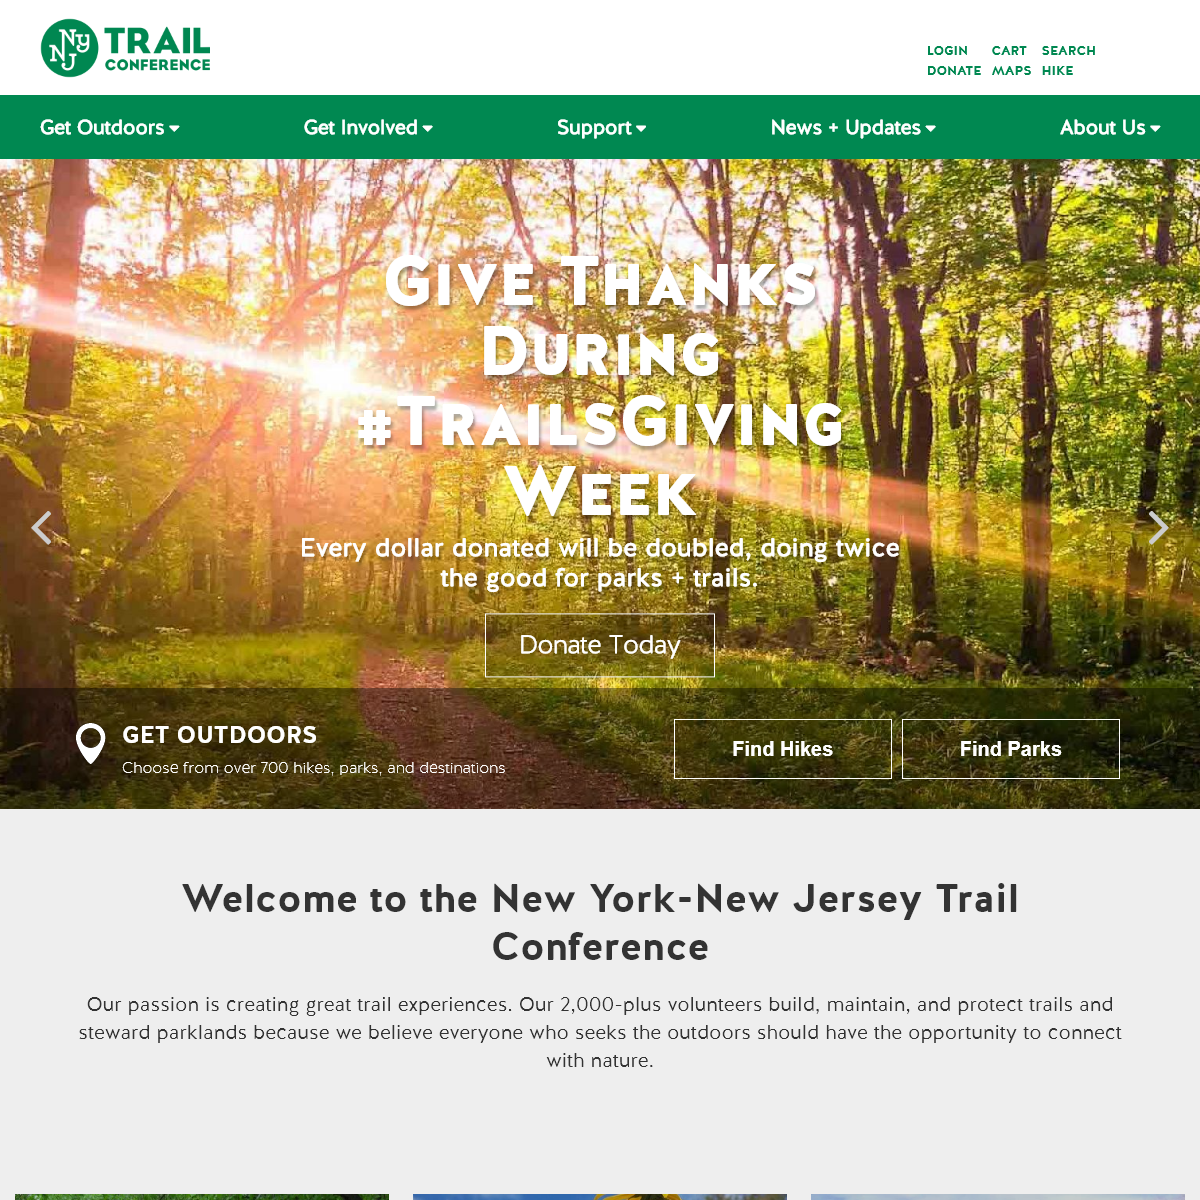 New York-New Jersey Trail Conference - The Authority for NY-NJ Hiking Trails